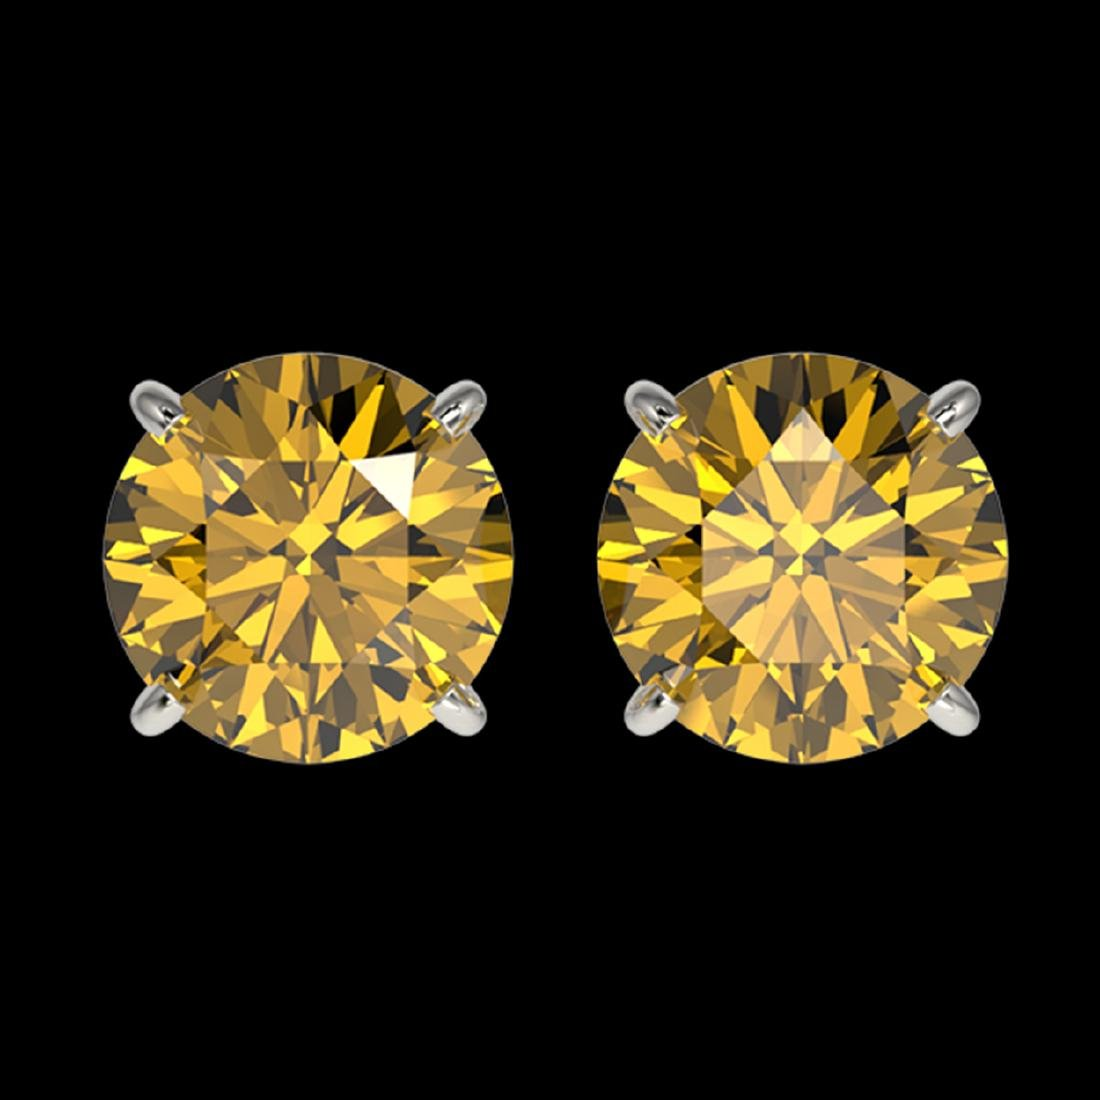 1.97 ctw Intense Yellow Diamond Stud Earrings 10K White